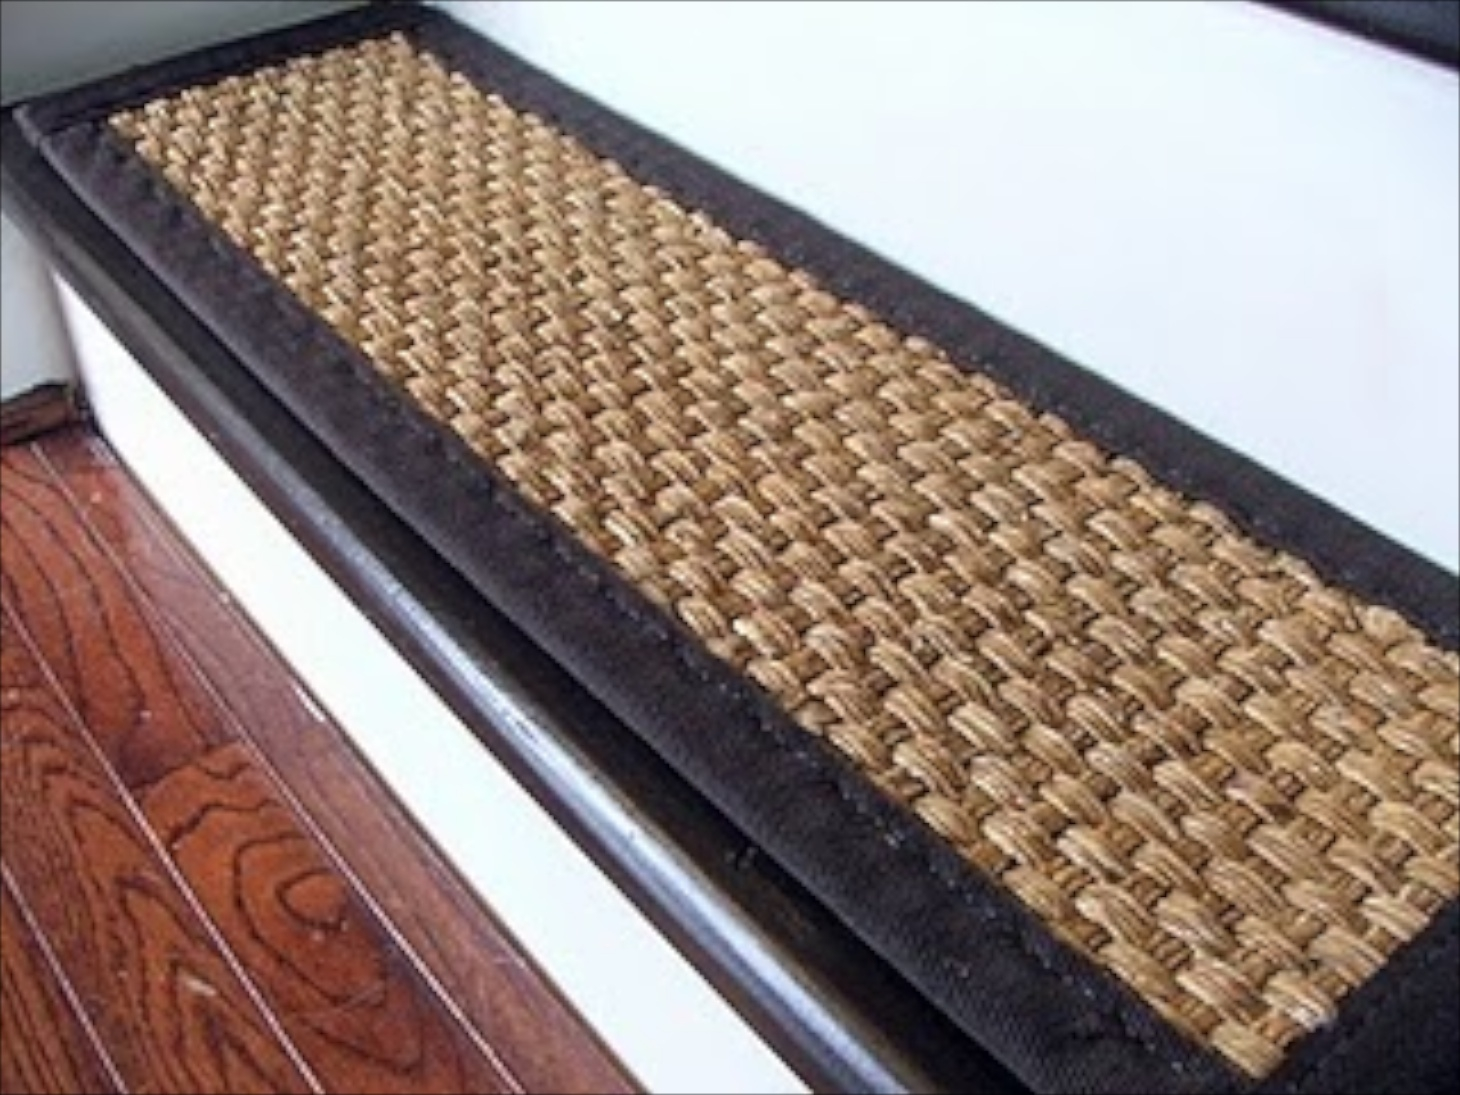 Flooring Pretty Stair Treads Carpet For Stair Decoration Idea Regarding Stair Tread Rugs Outdoor (#5 of 20)